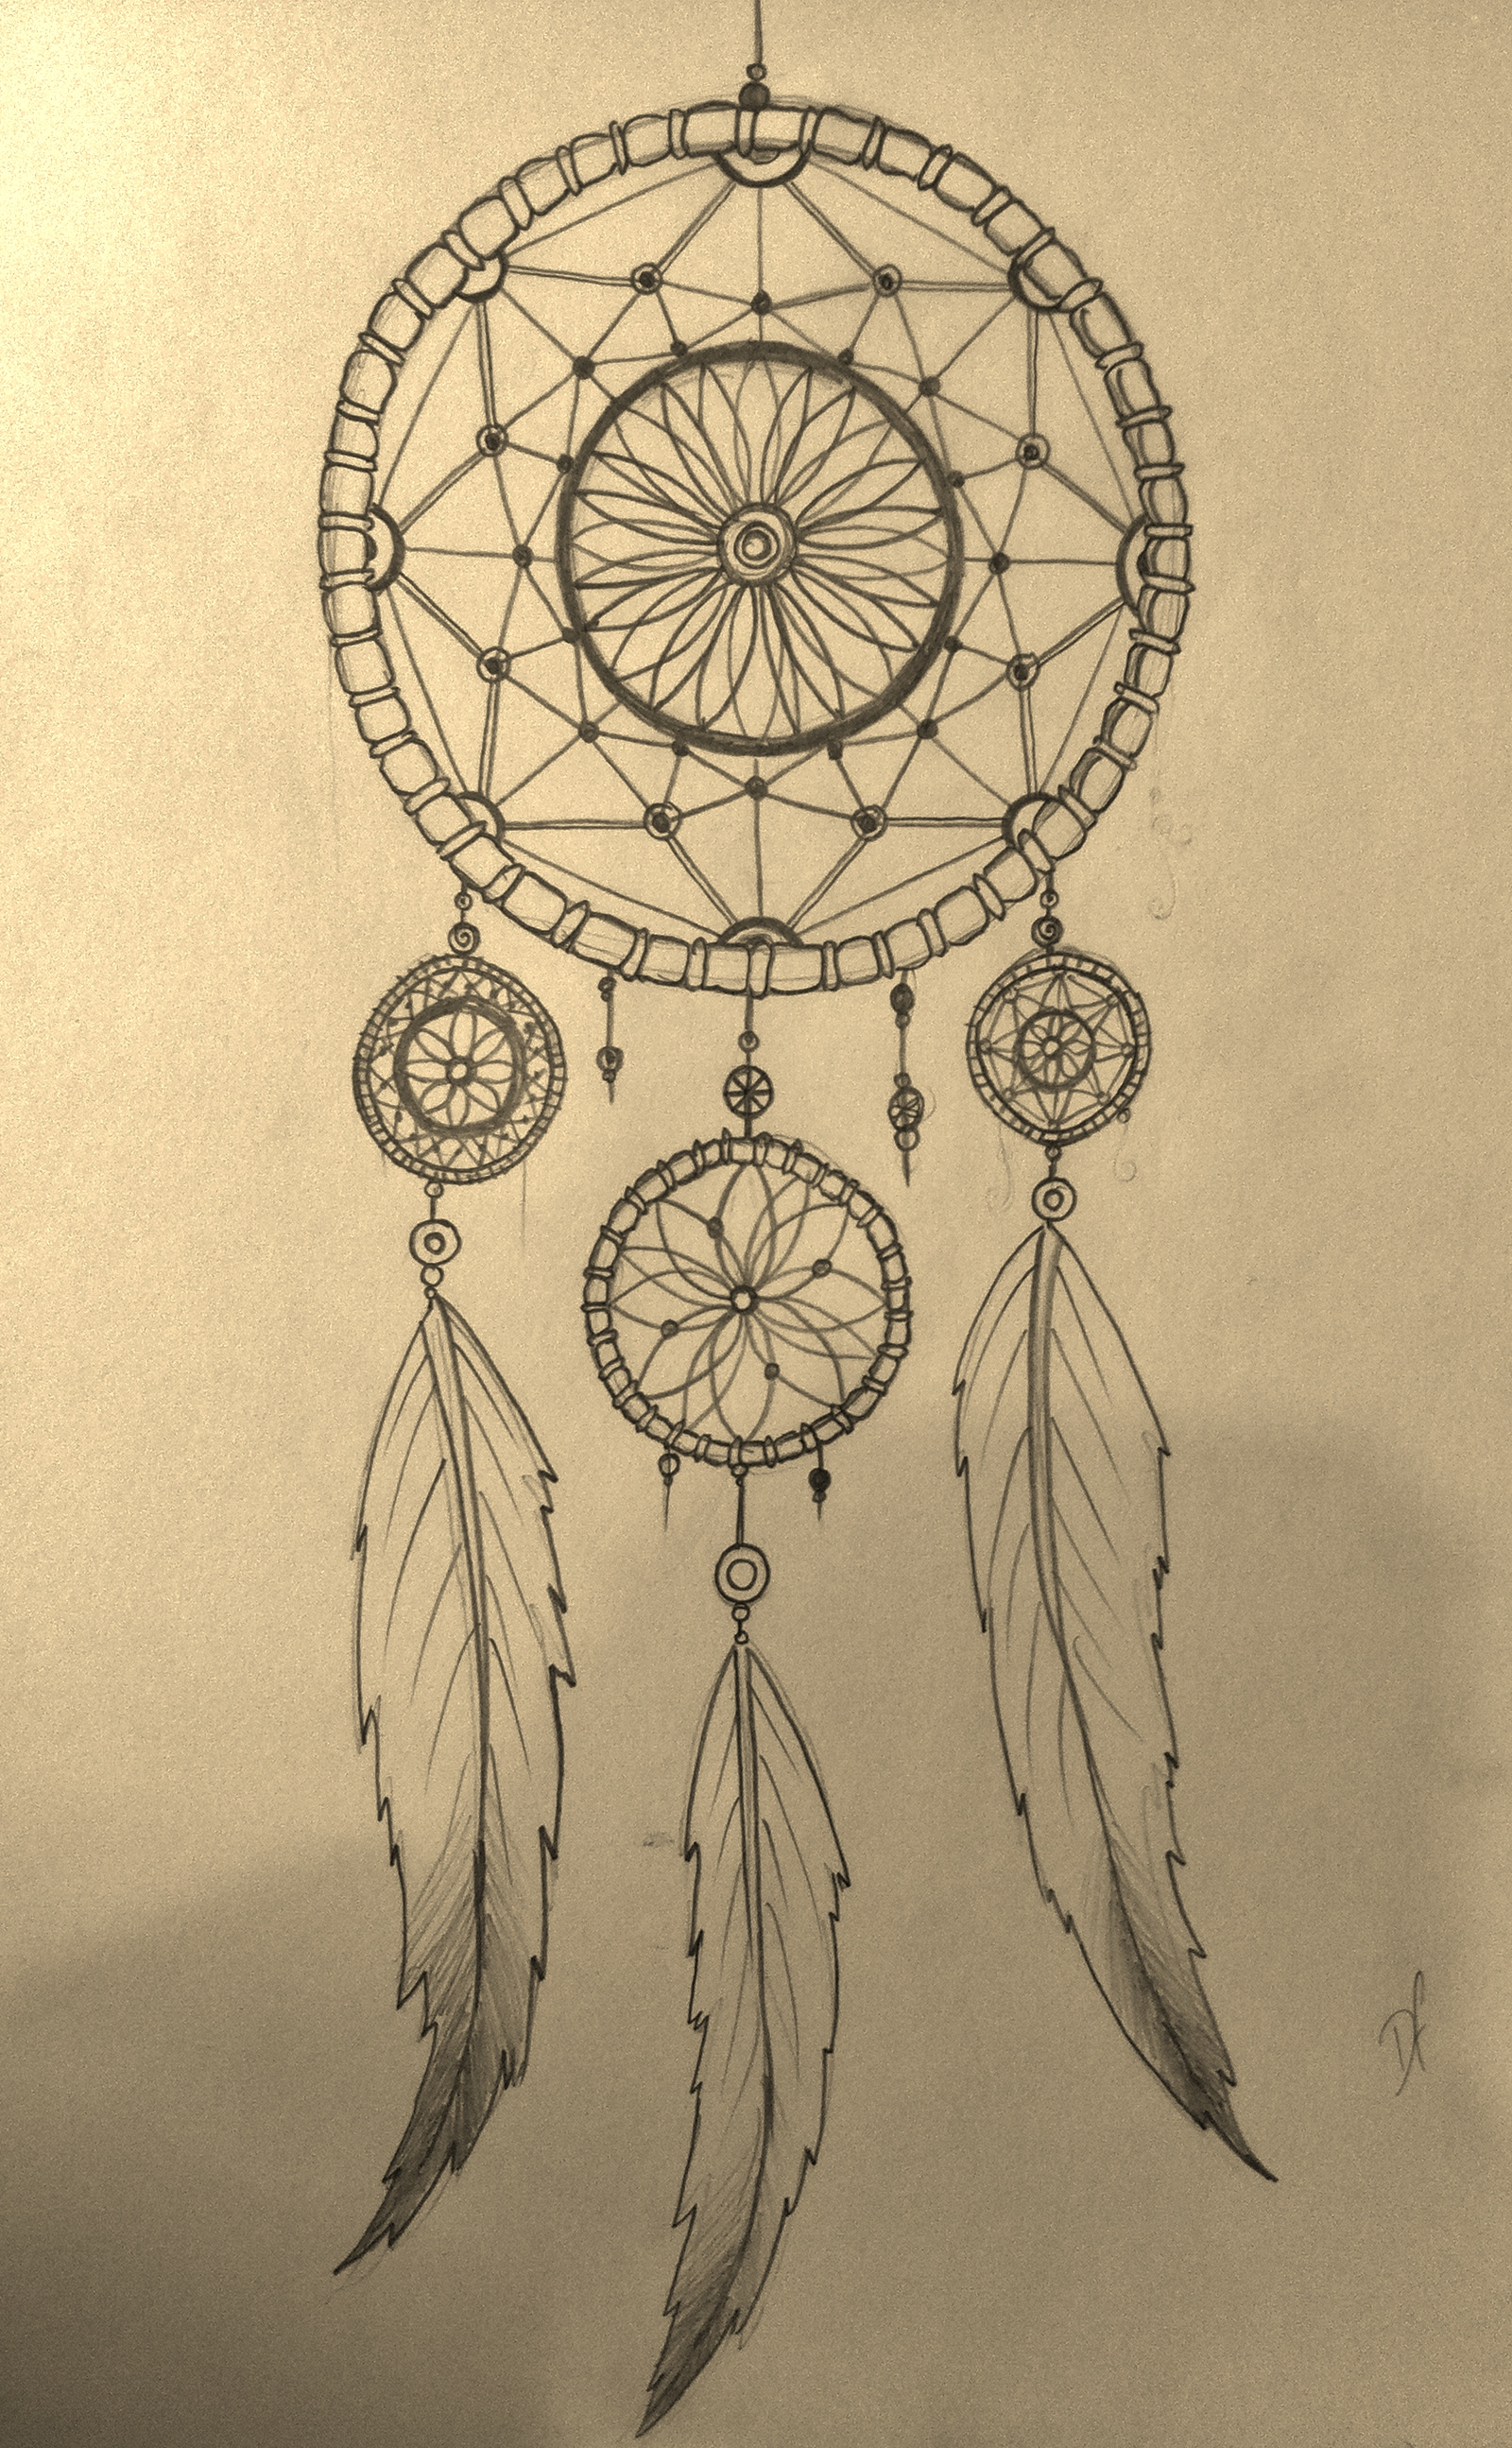 Drawn dreamcatcher  simple designs designs Google